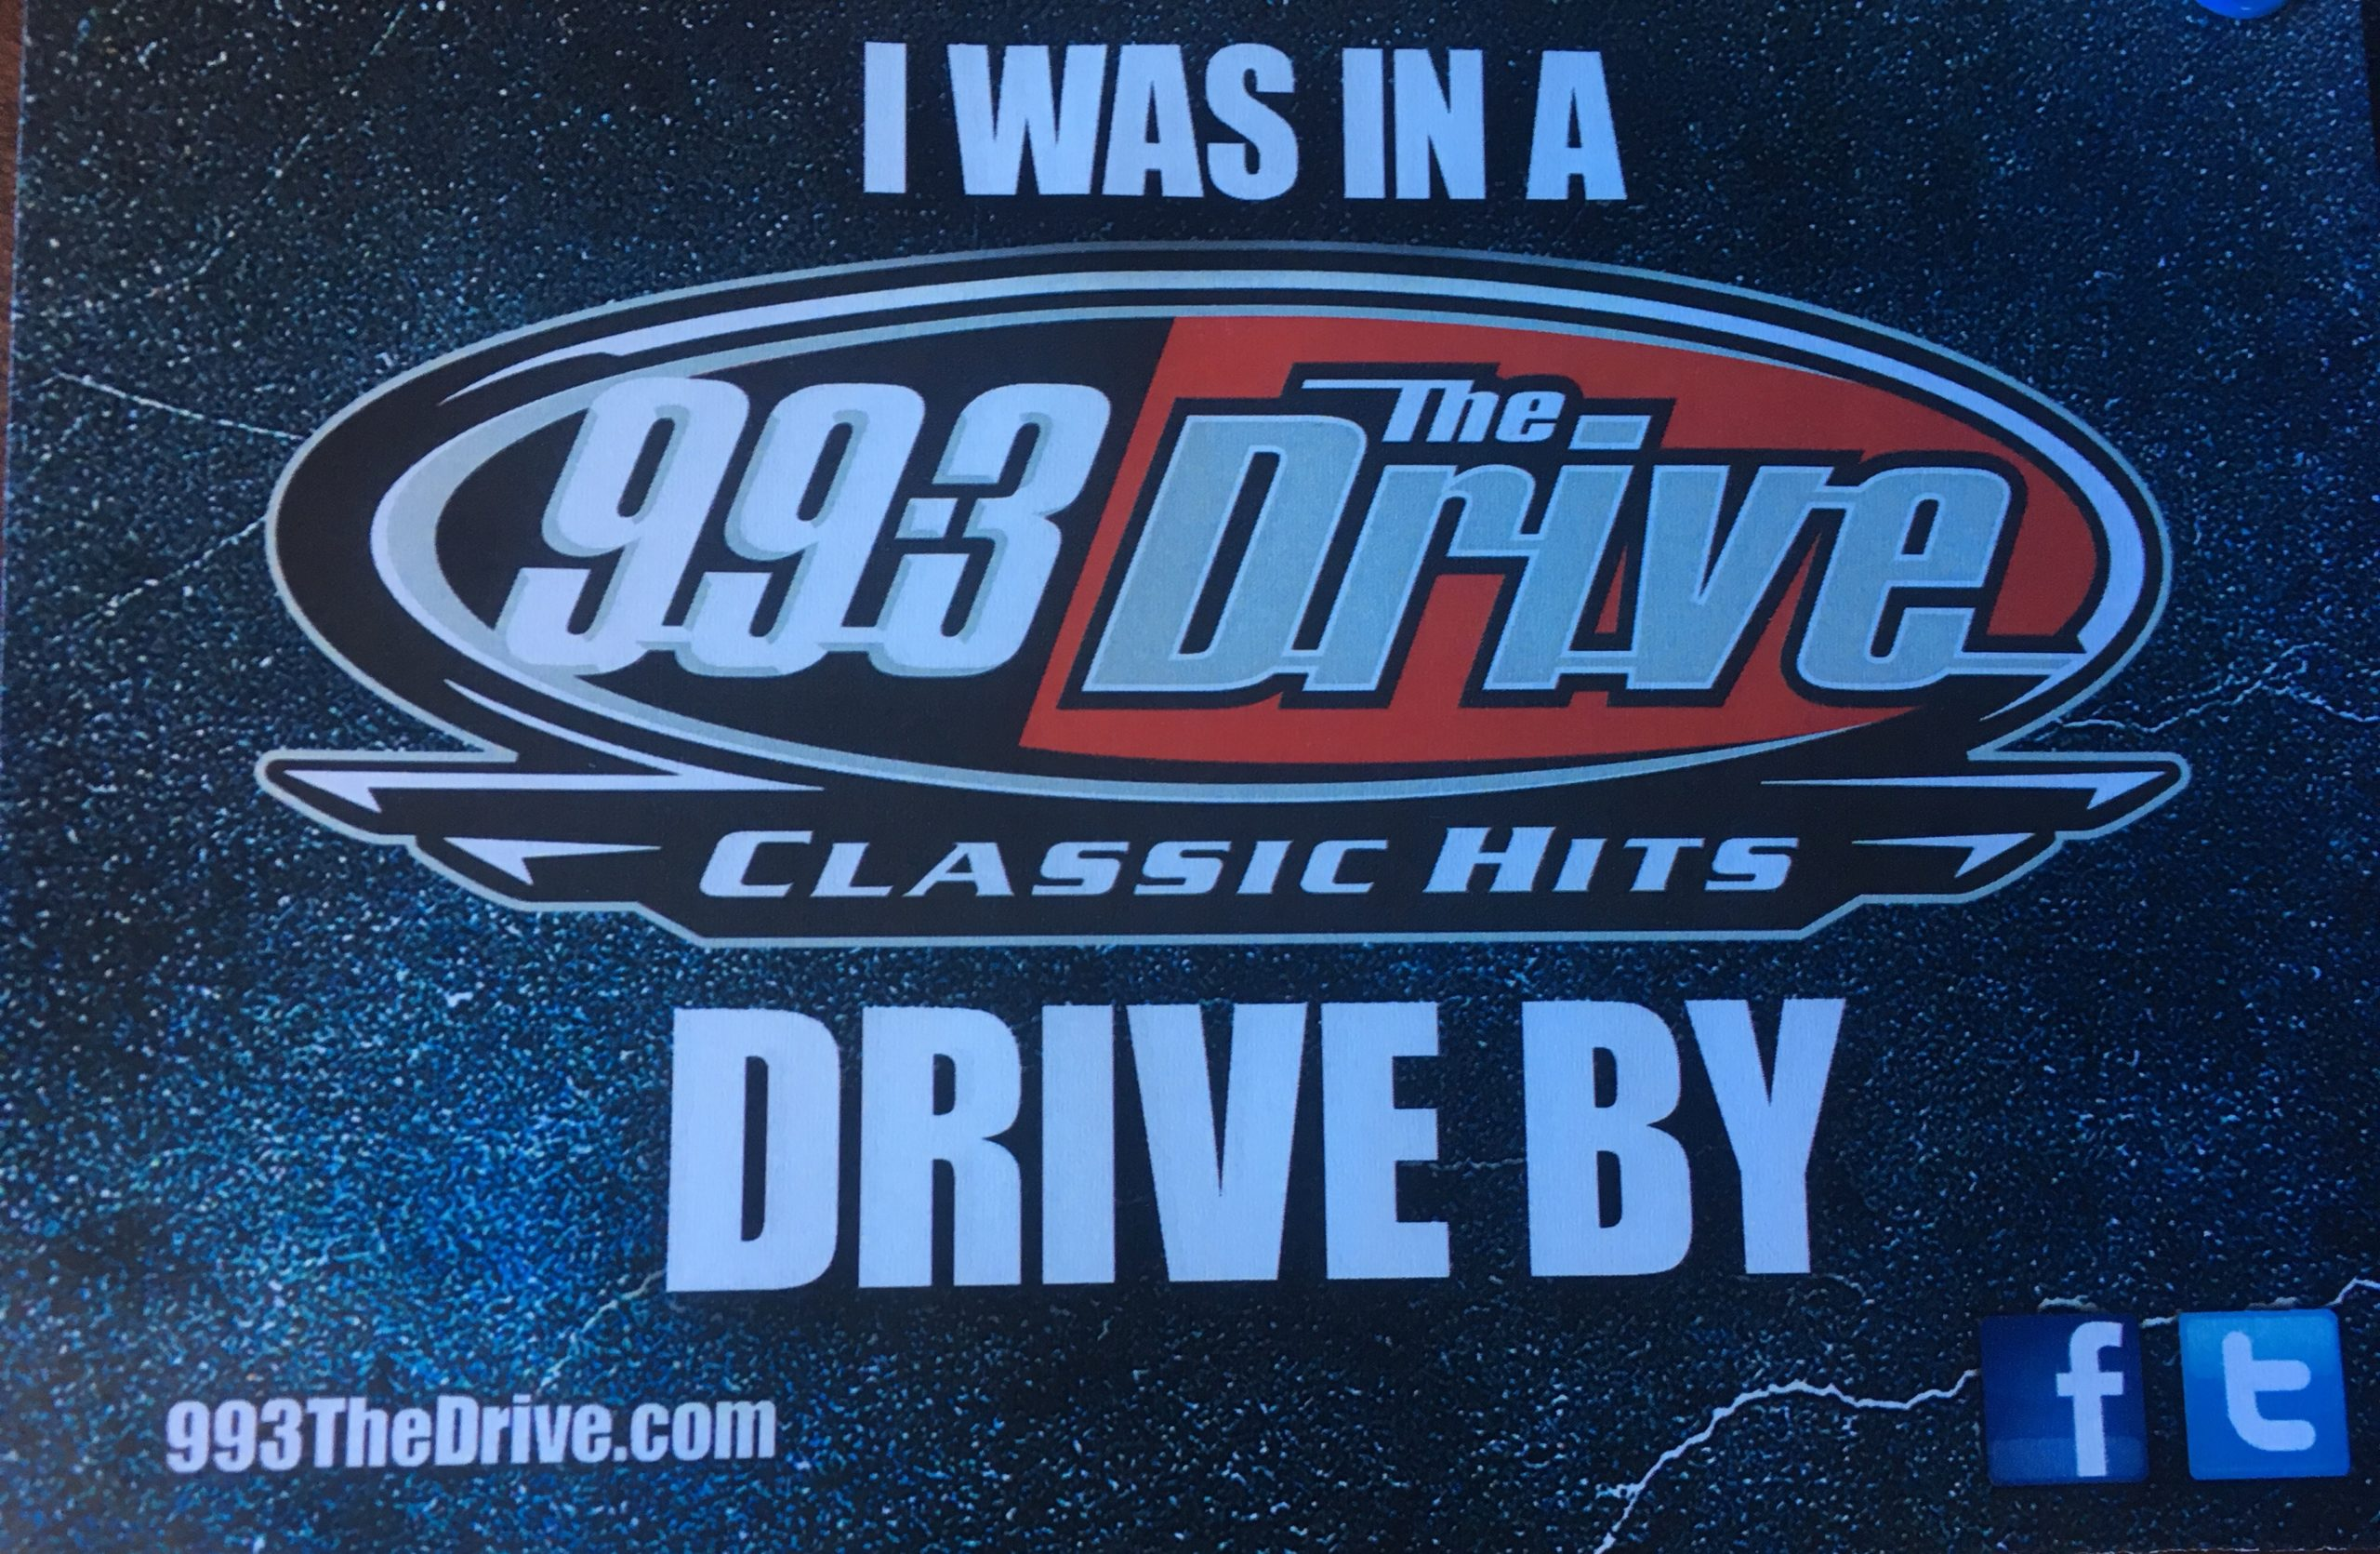 99.3 The Drive's Drive By!